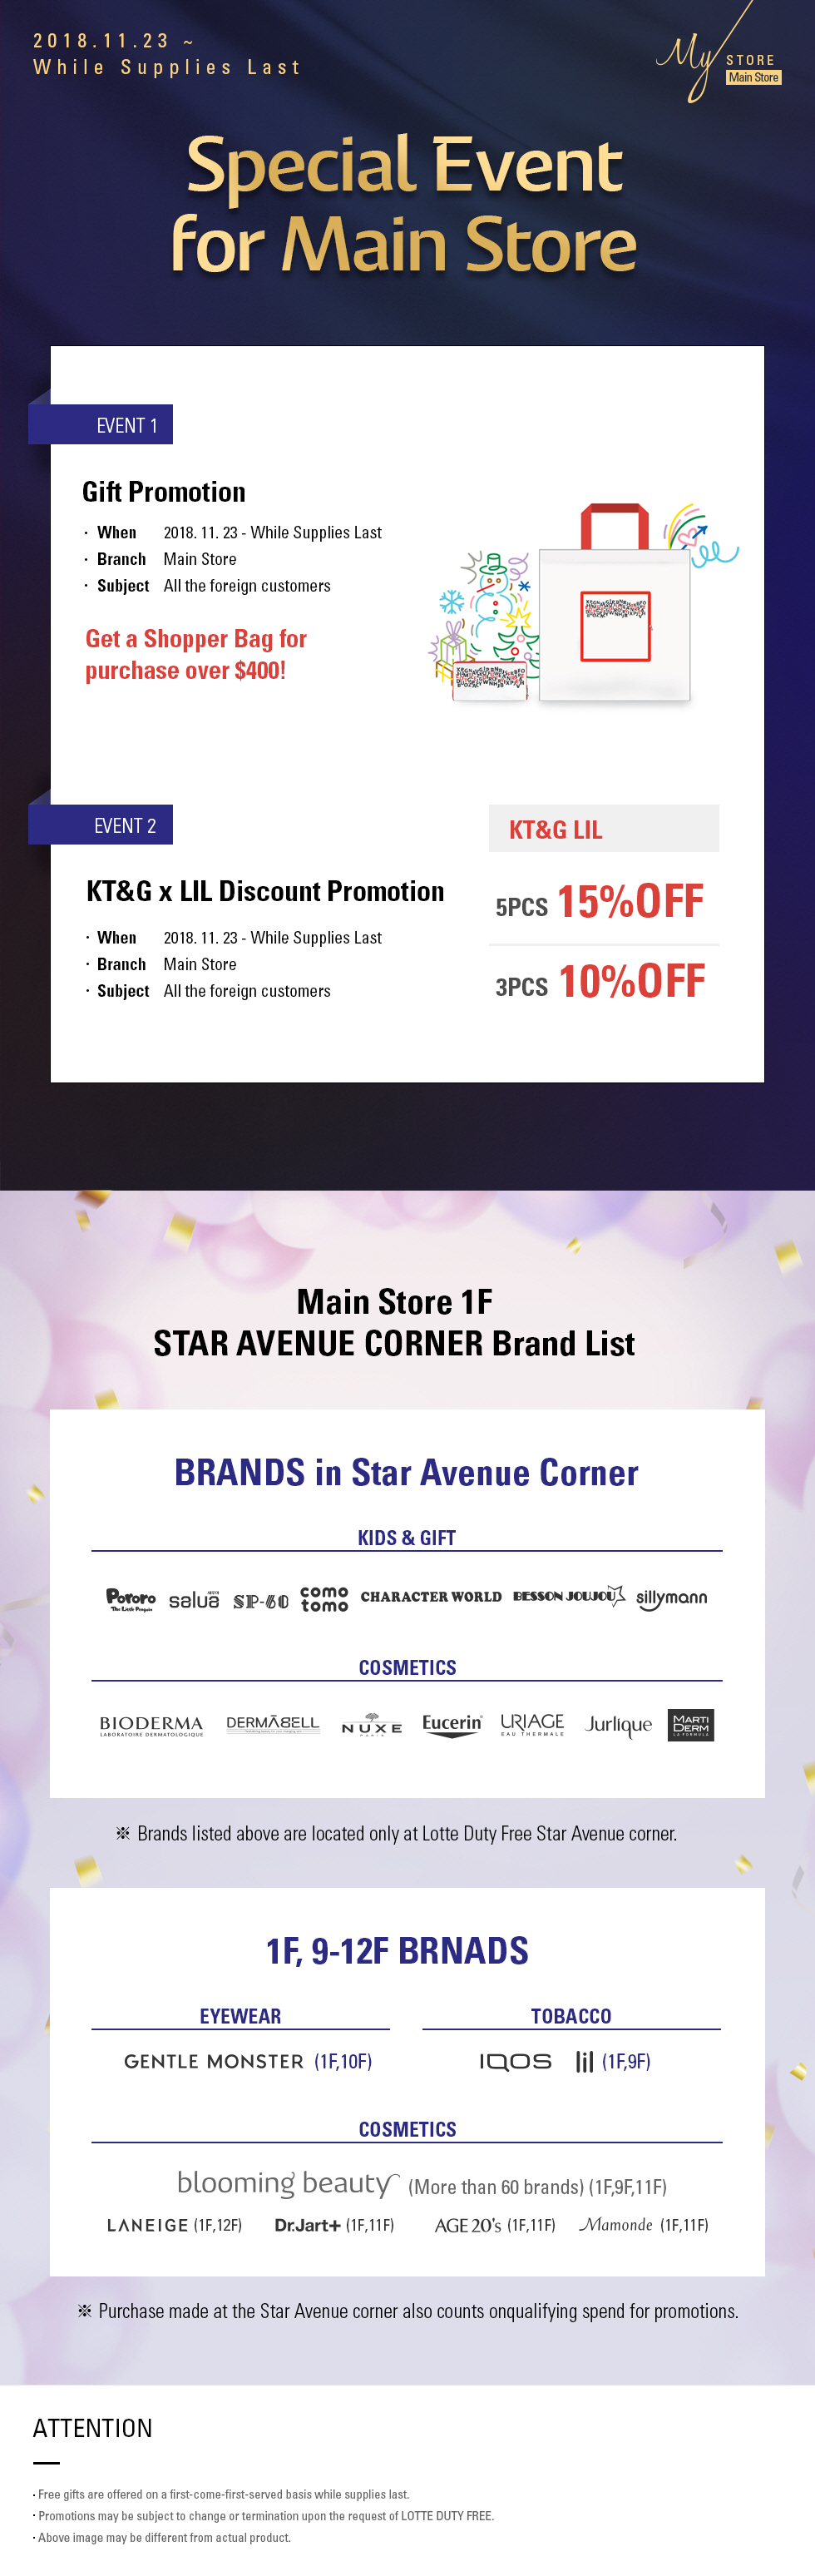 Special Event for Main Store